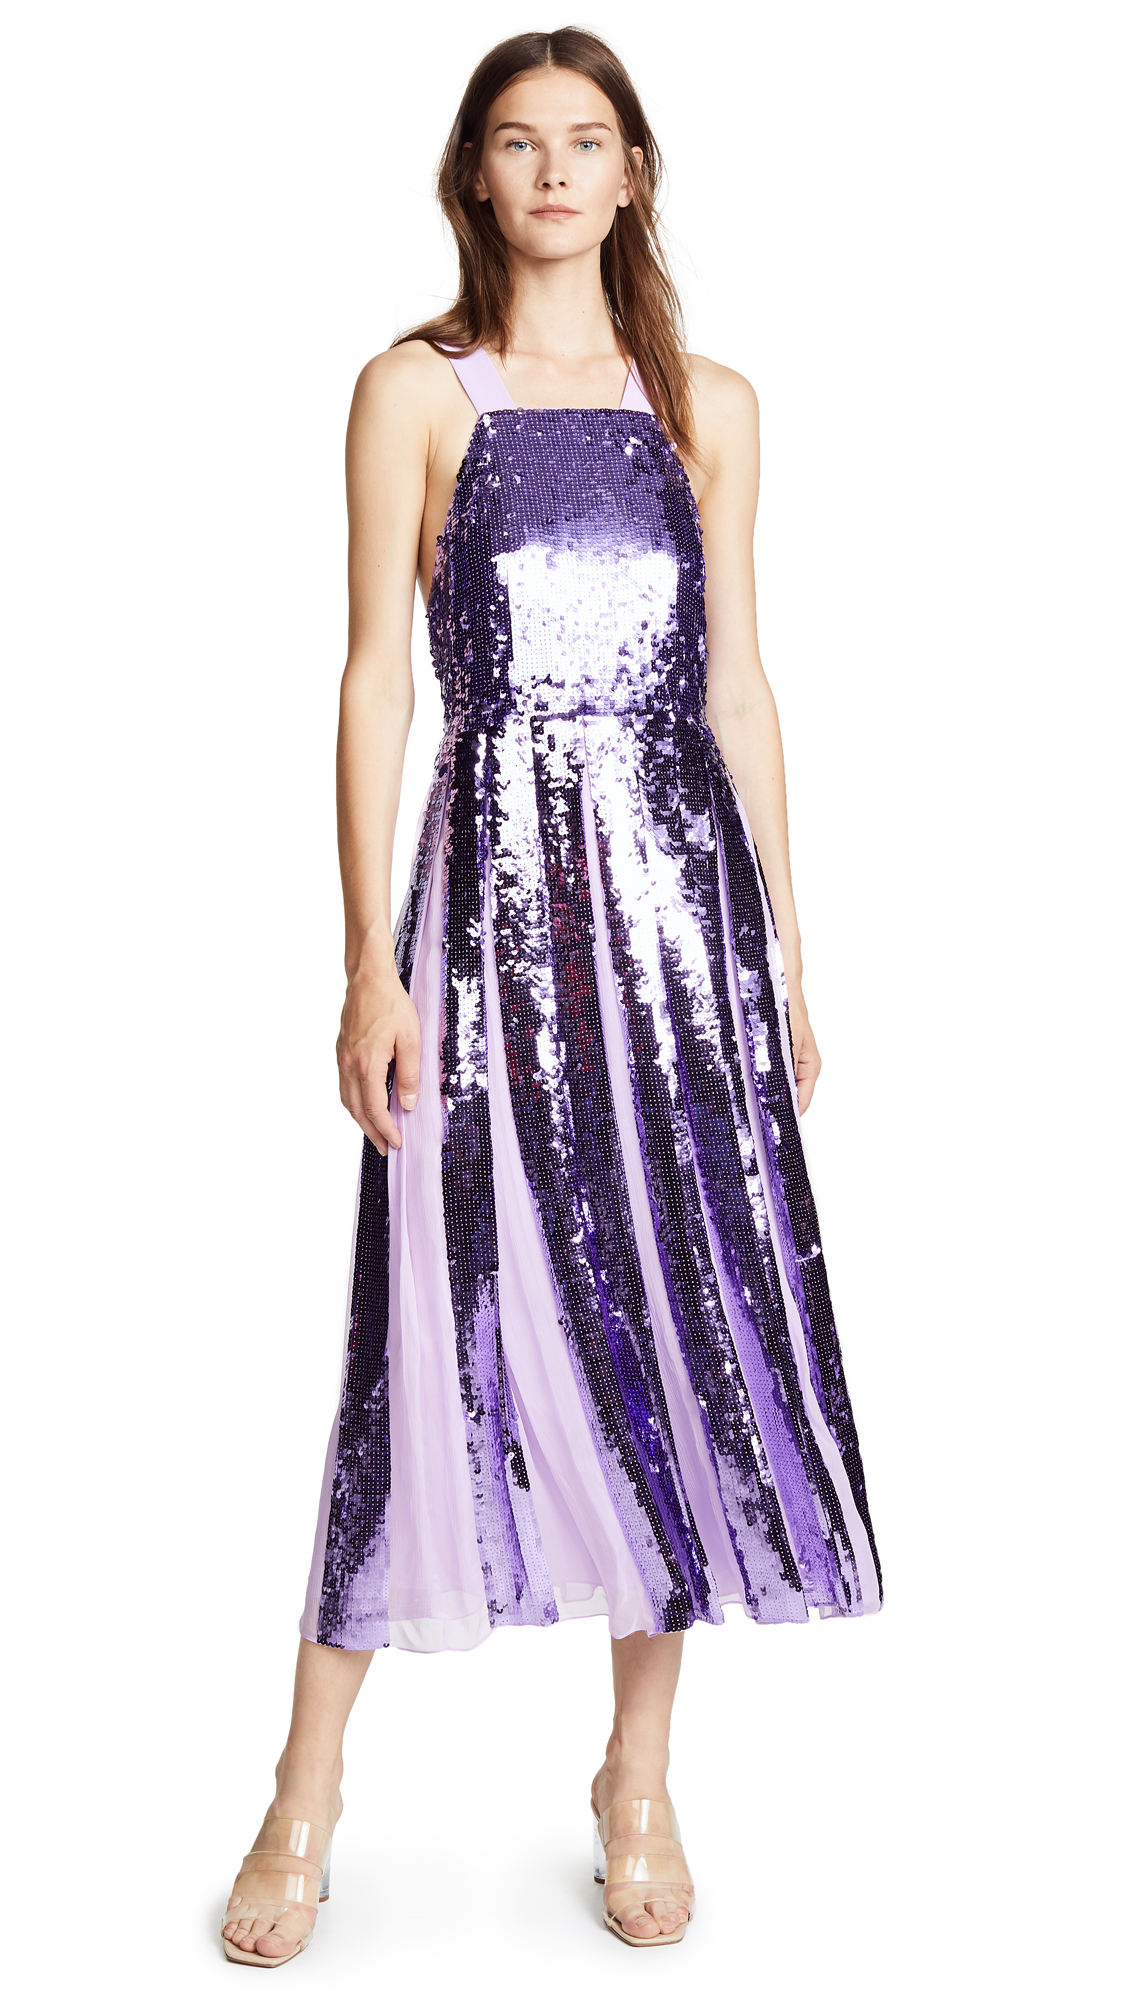 Tibi Sequin Overall Dress - Lavender